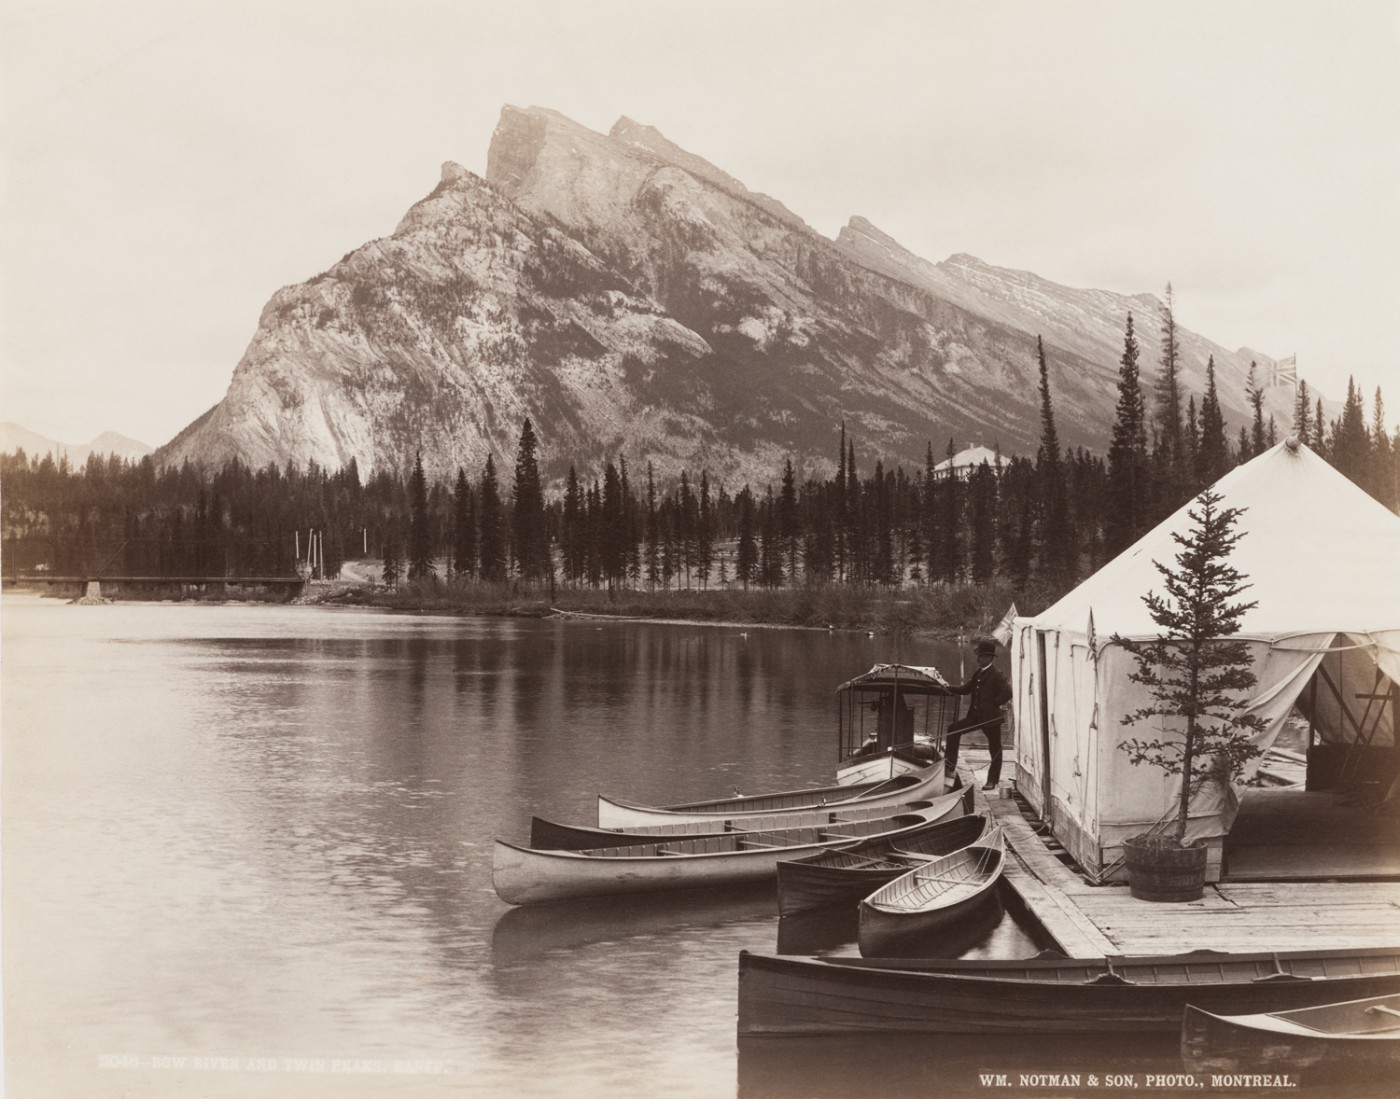 William Notman and Son, </span><span><em>Bow River and Twin Peaks, Banff (Alberta)</em>, </span><span>1889. Albumen silver print. Canadian Centre for Architecture.